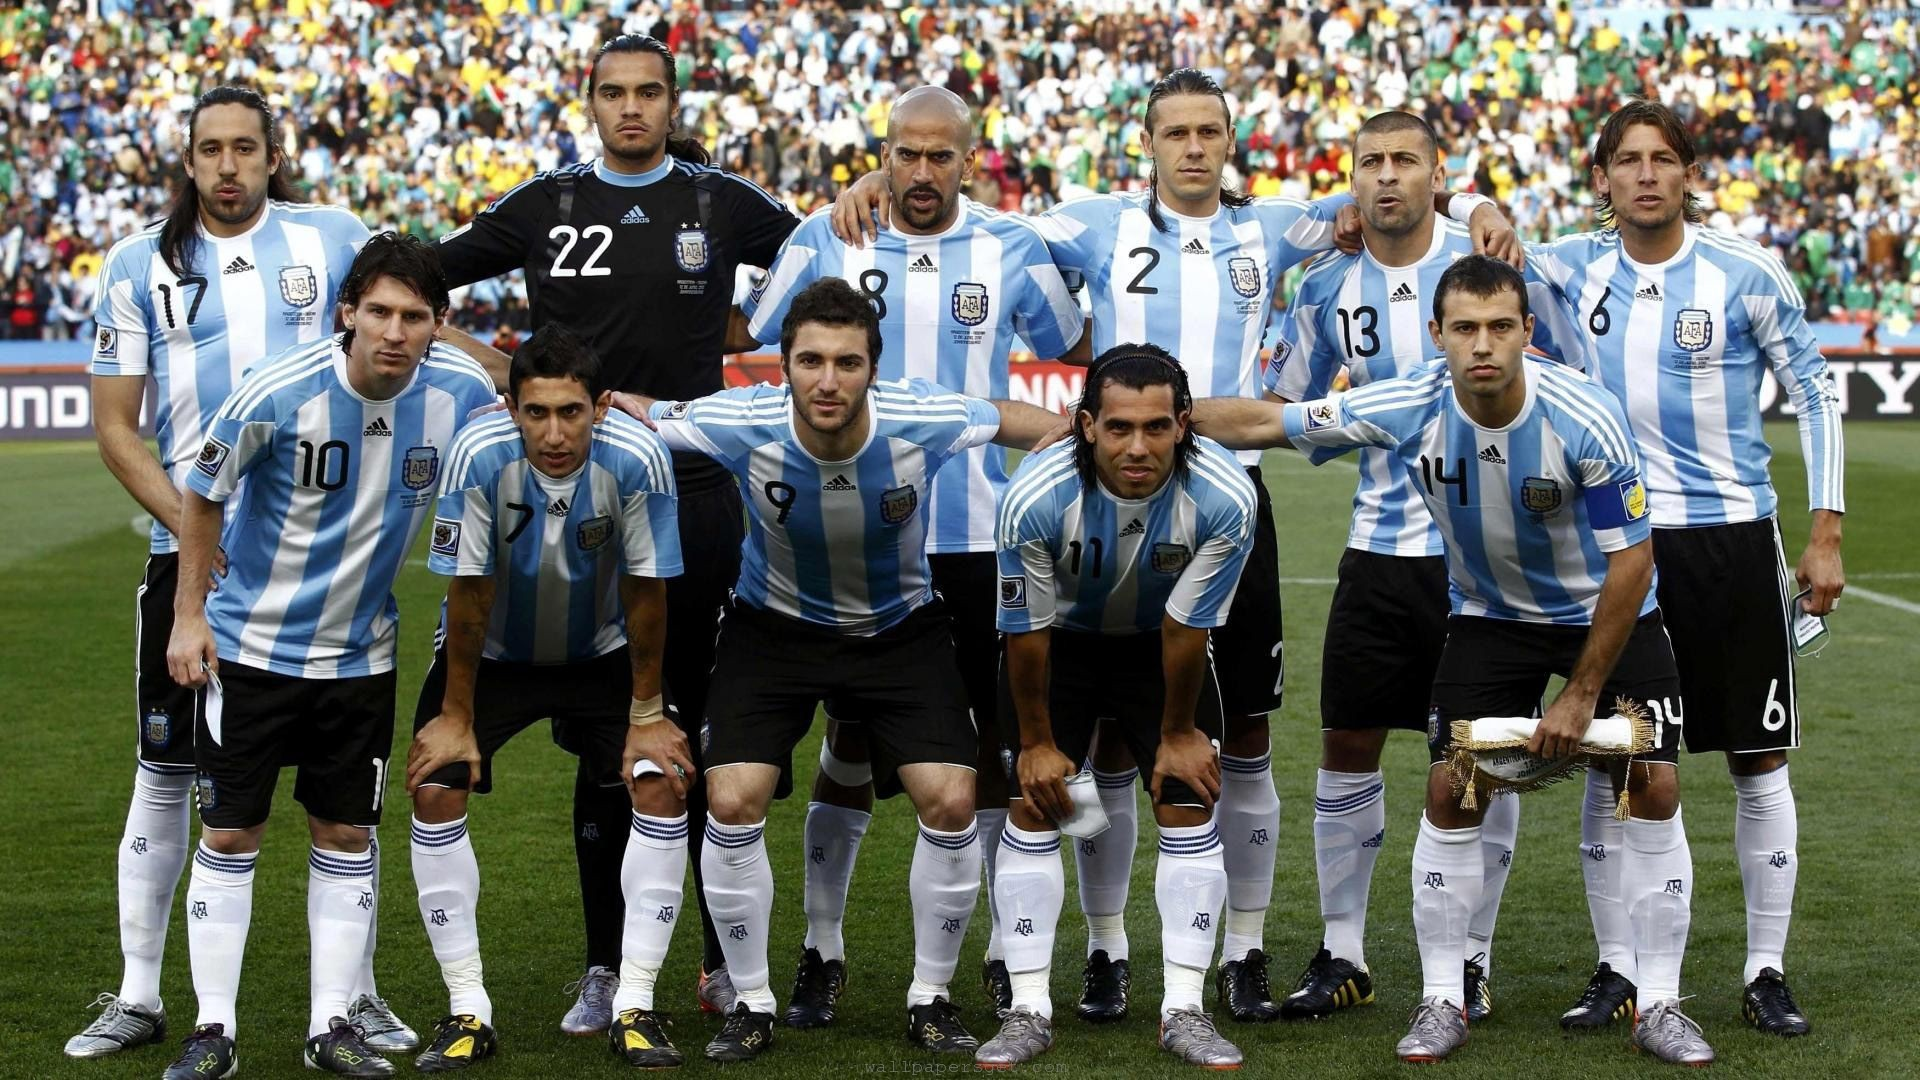 Argentina National Football Team Backgrounds, Compatible - PC, Mobile, Gadgets| 1920x1080 px